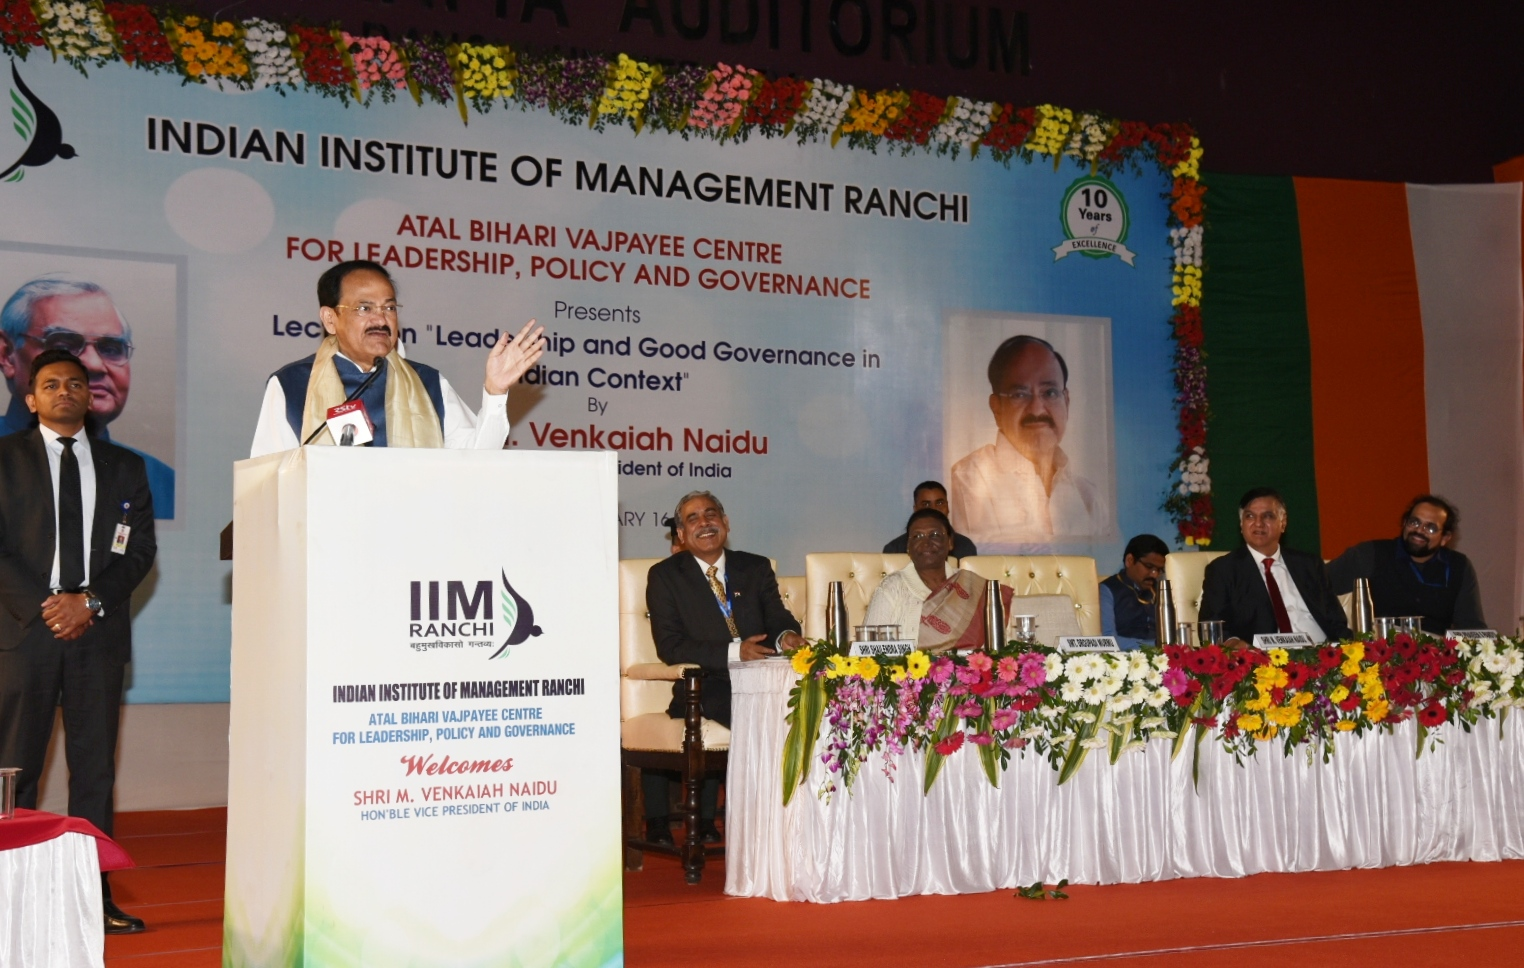 The Vice President, Shri M. Venkaiah Naidu delivering the lecture on 'Leadership and Good Governance in Indian Context', organised by Atal Bihari Vajpayee Centre for Leadership, Policy and Governance, IIM in Ranchi, on 16 February, 2020.